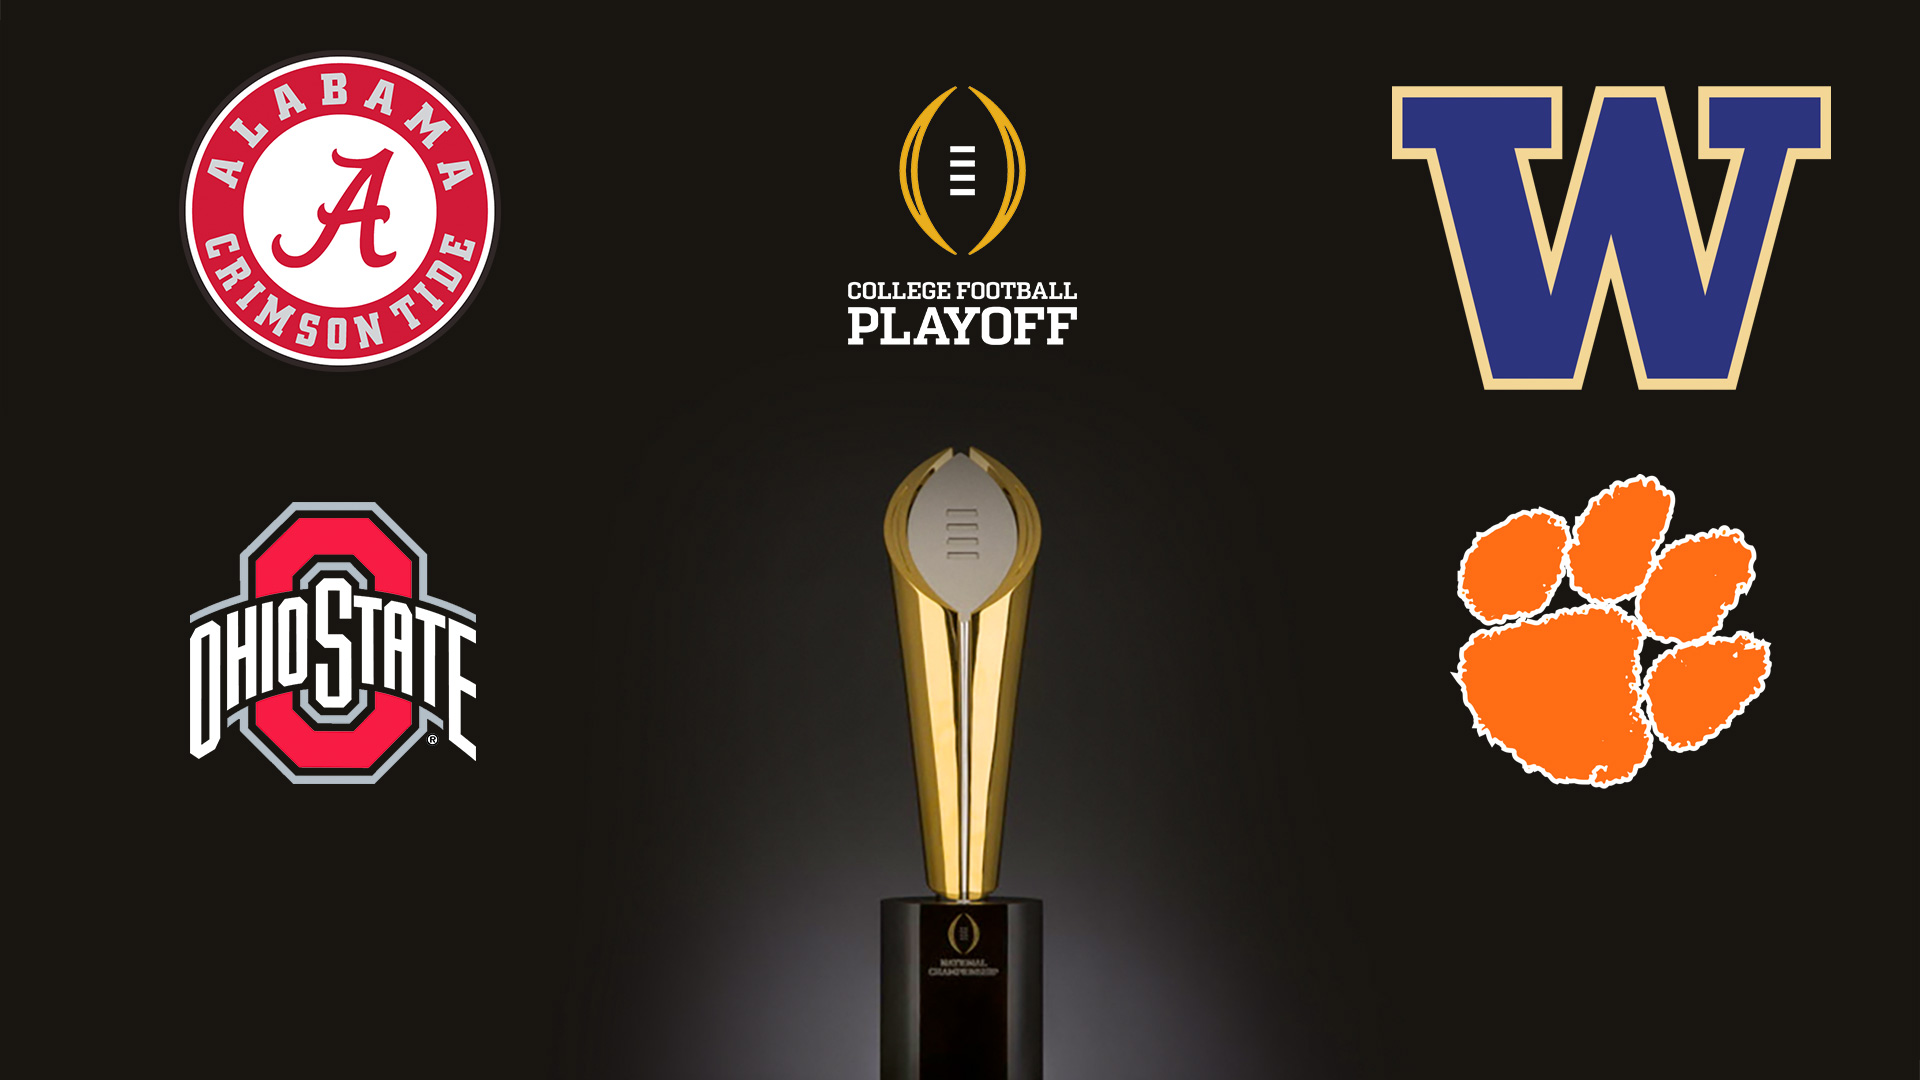 ncaa football schedule week 8 cfp national championship